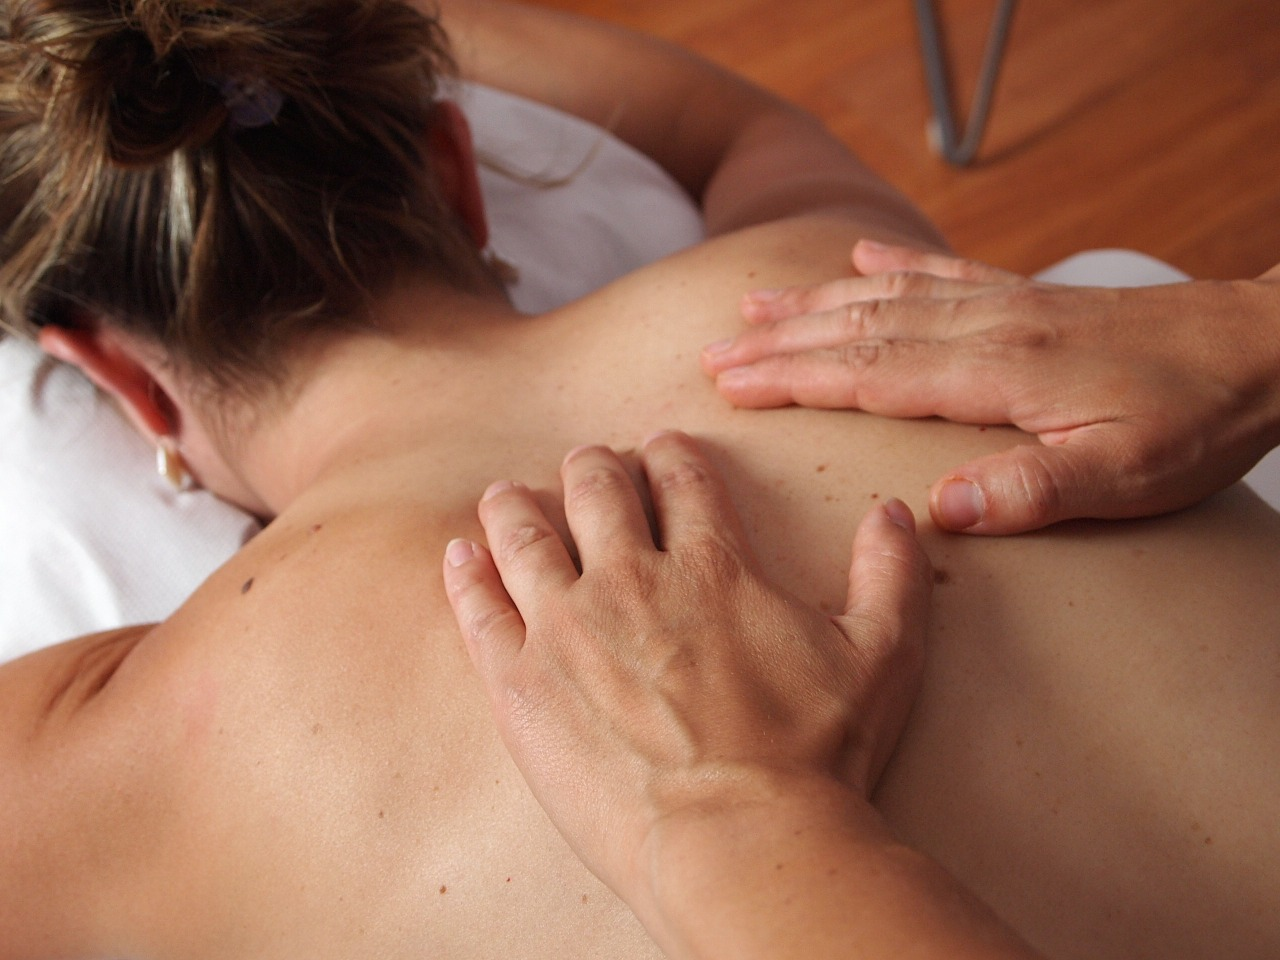 massage therapy benefits your health